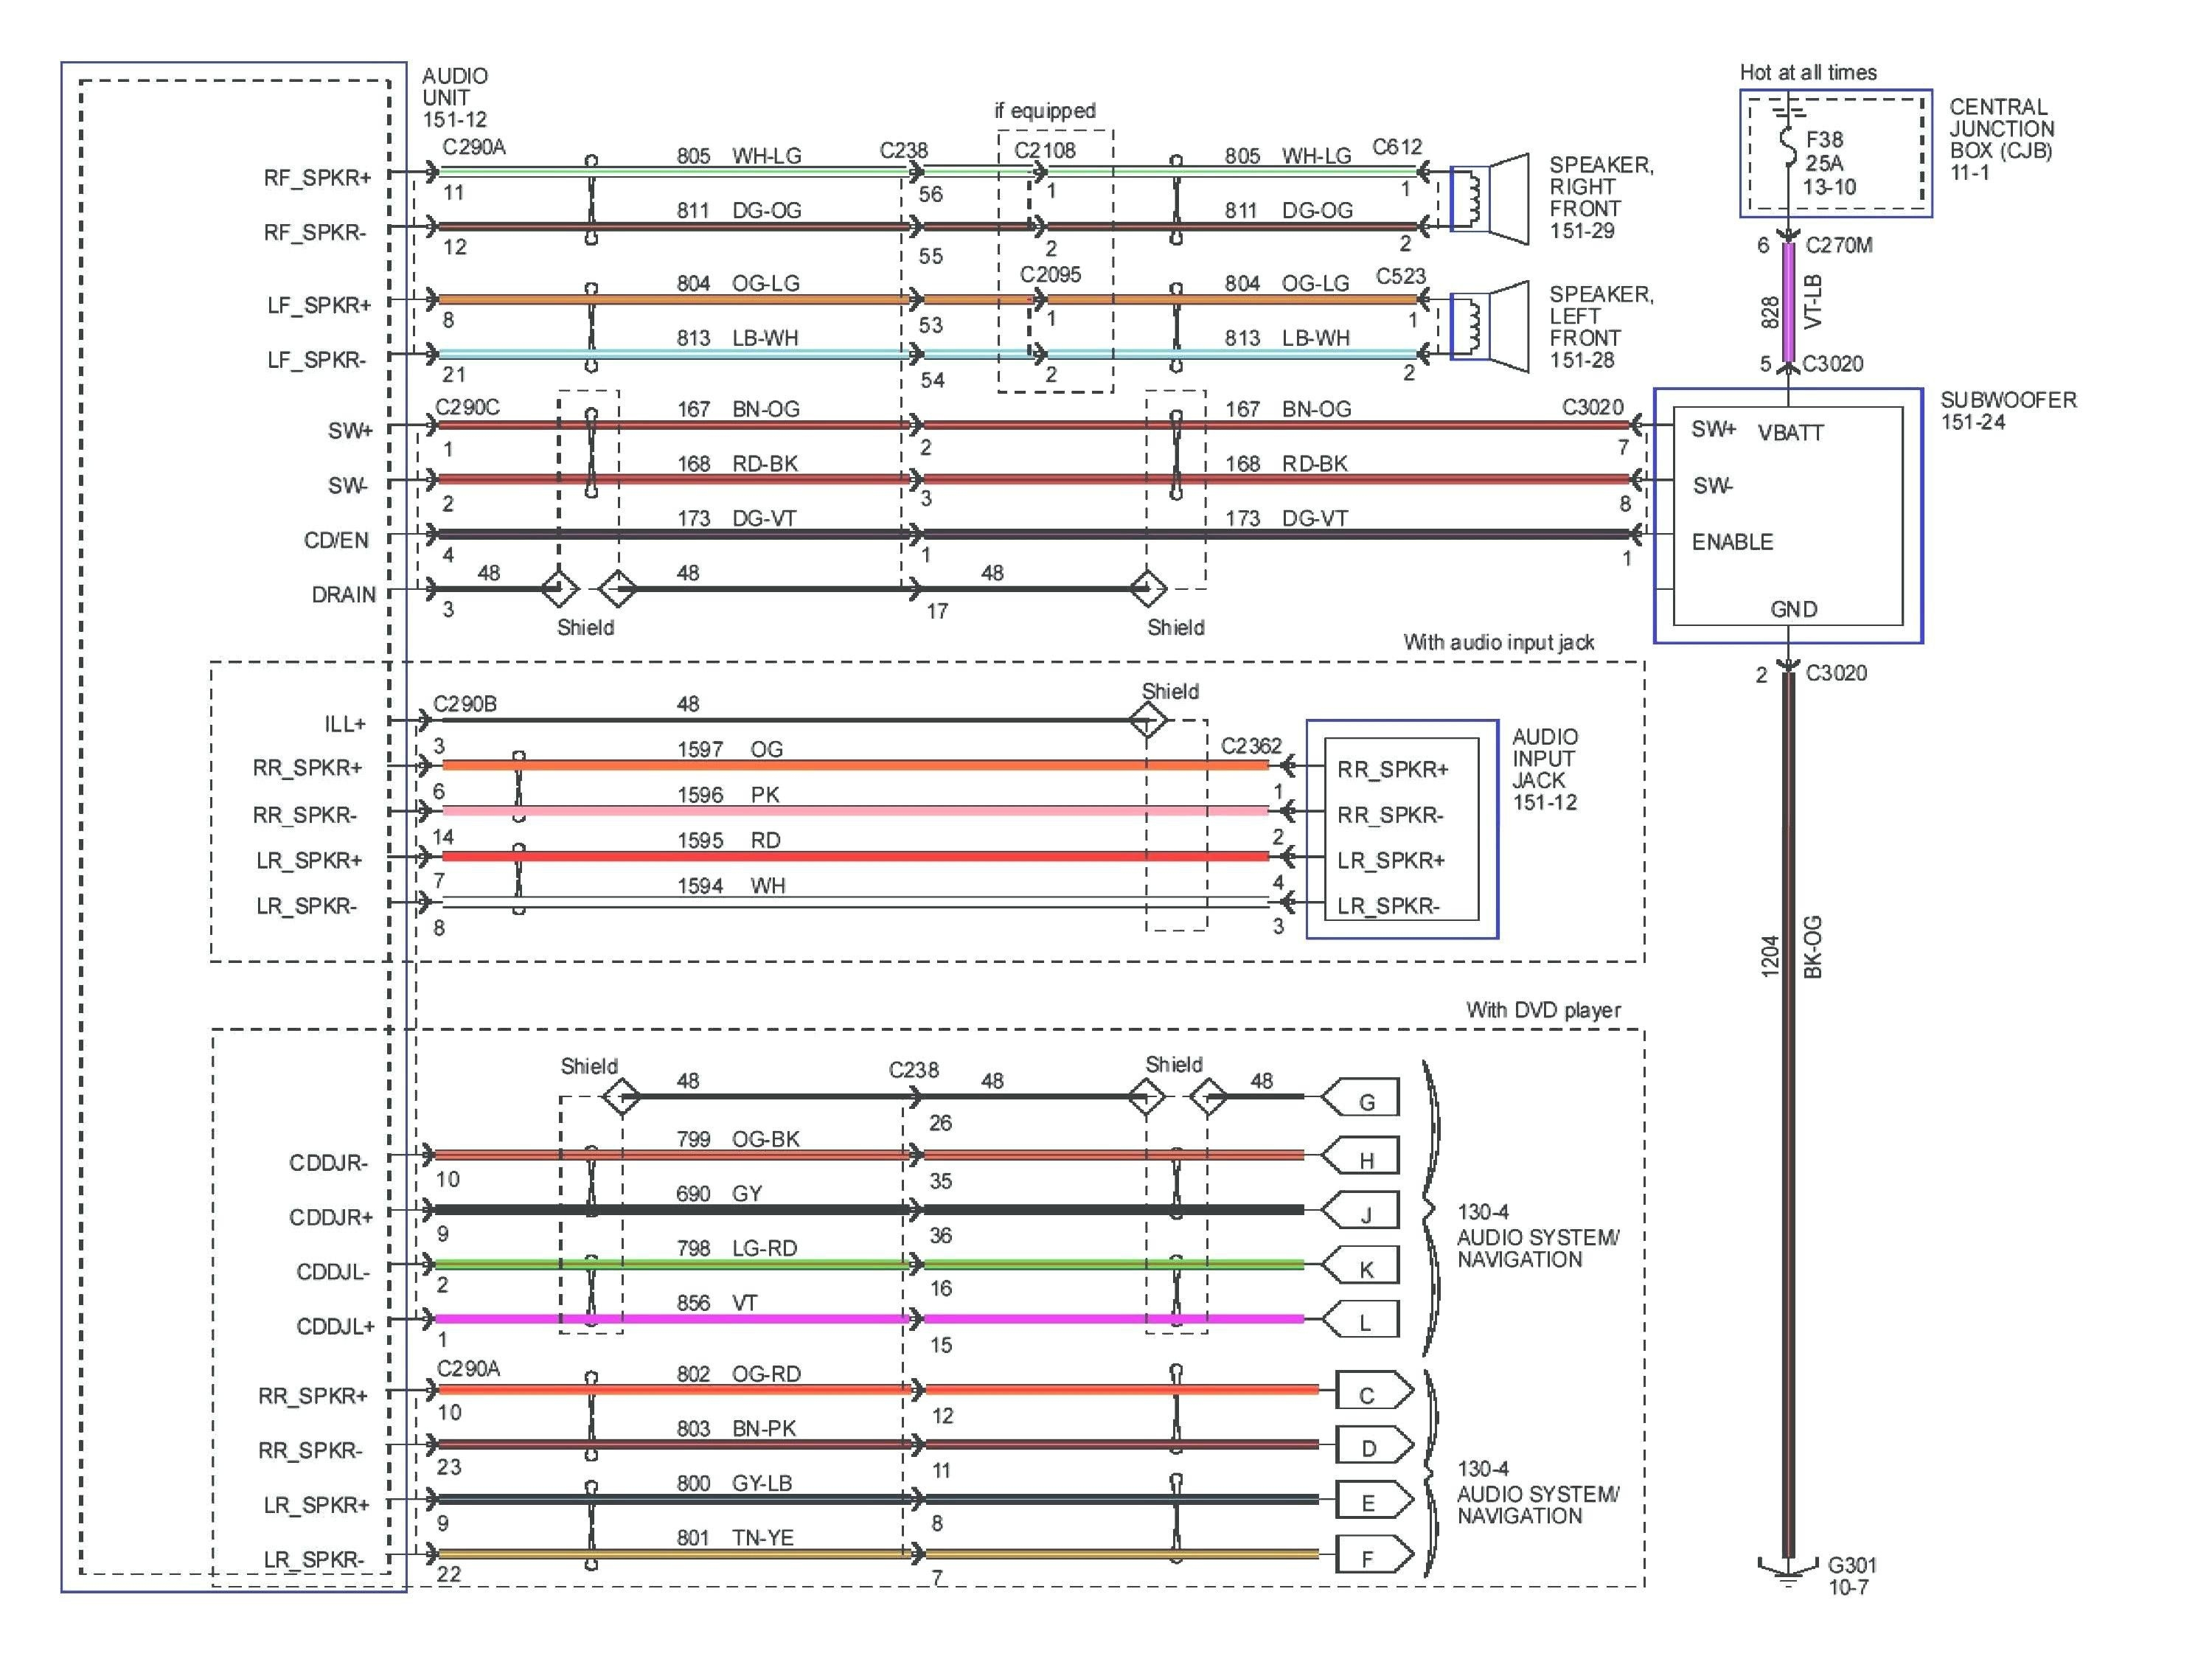 pioneer avh-x2800bs wiring diagram Collection-Pioneer Avh 280bt Wiring Diagram Fresh Pioneer Avh X2800bs Wiring Diagram Awesome Generous Pioneer Avh 8-r